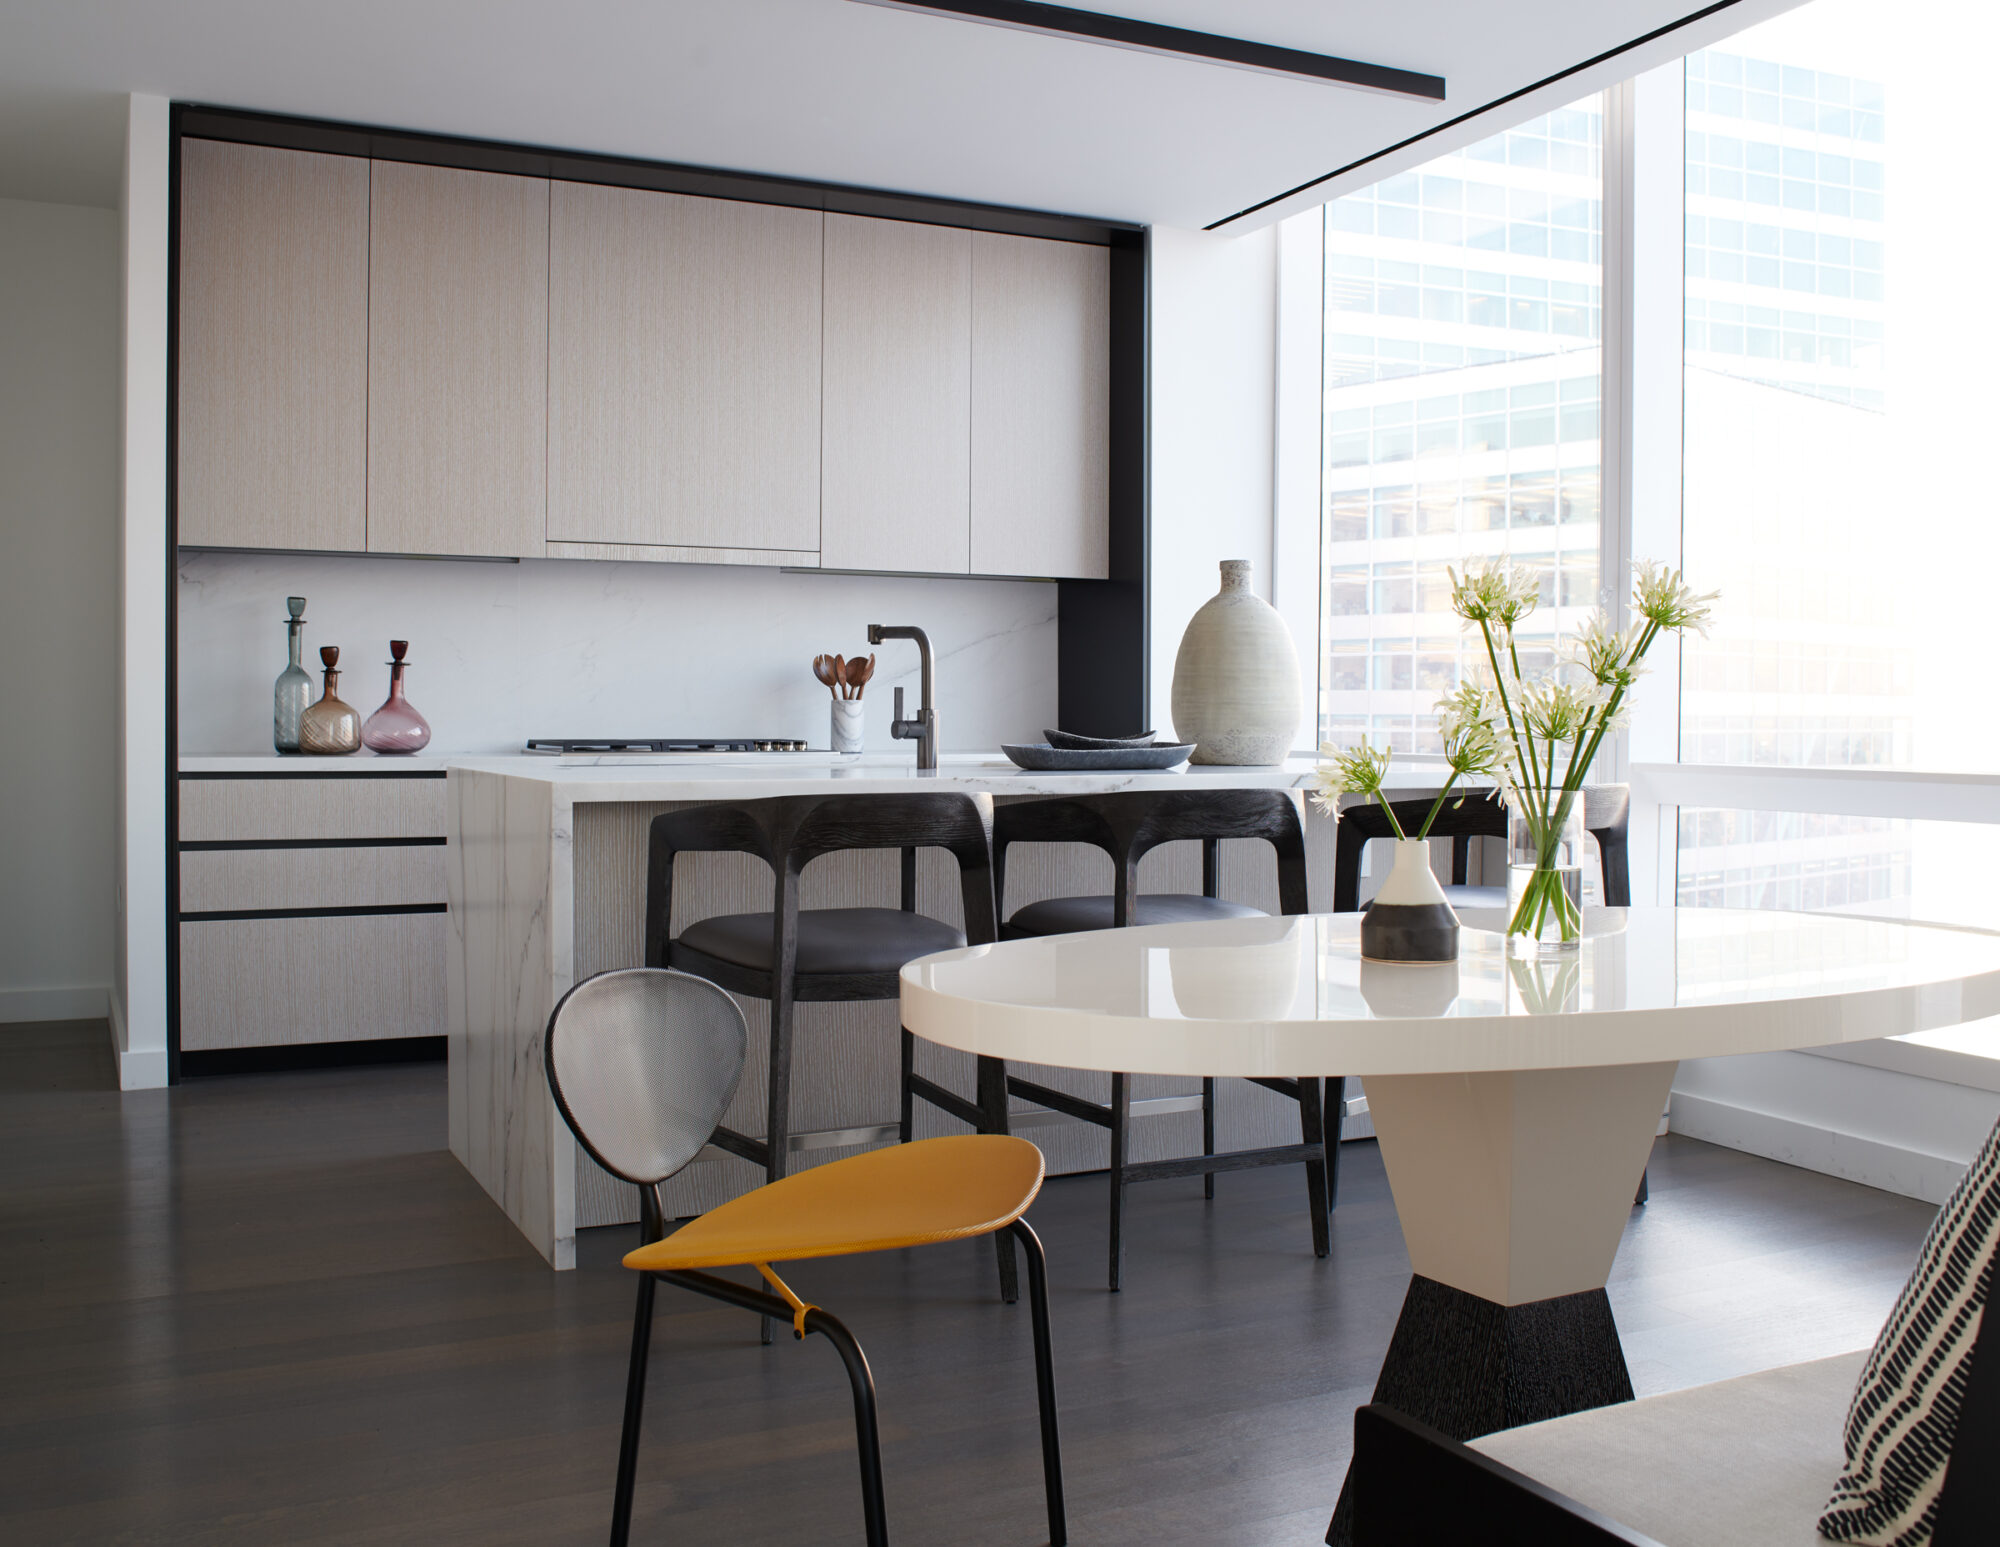 A simple, neutral-toned kitchen showcases the open floor plan